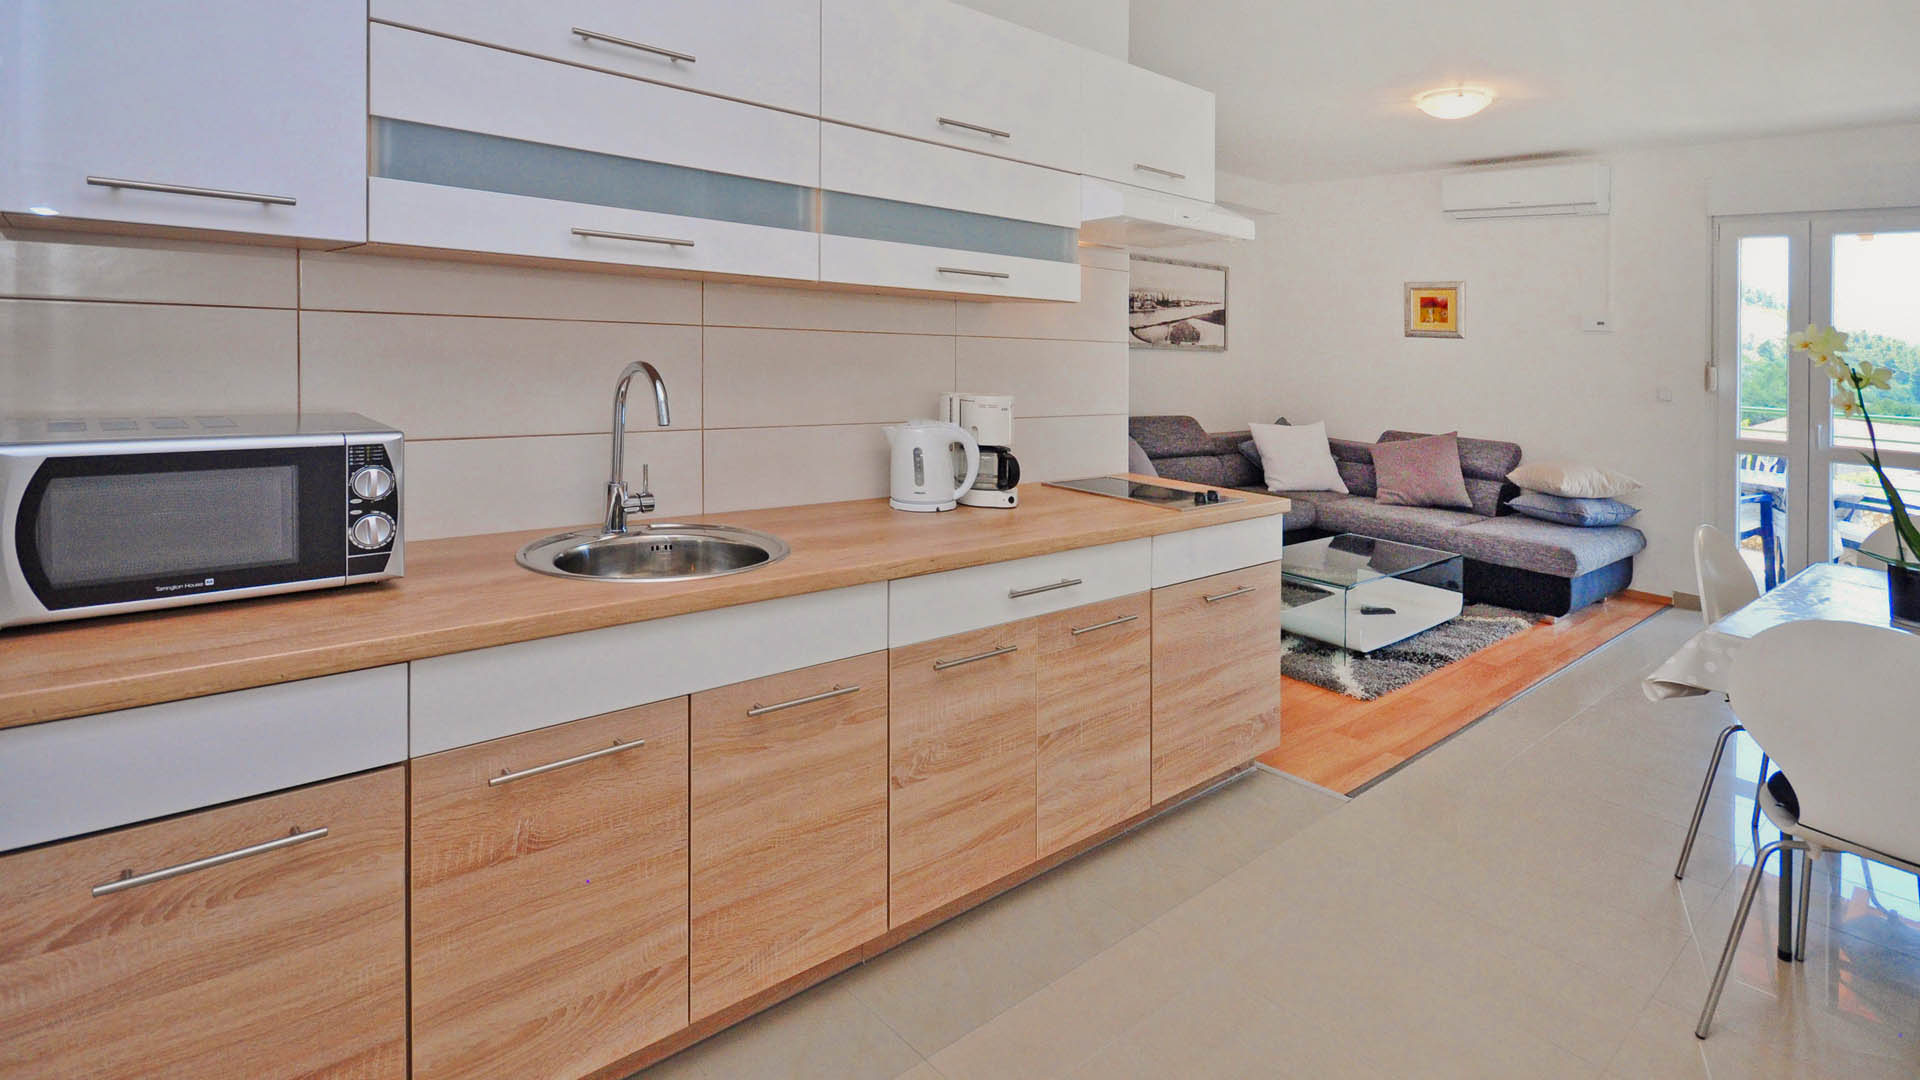 Residential Apartment kitchen